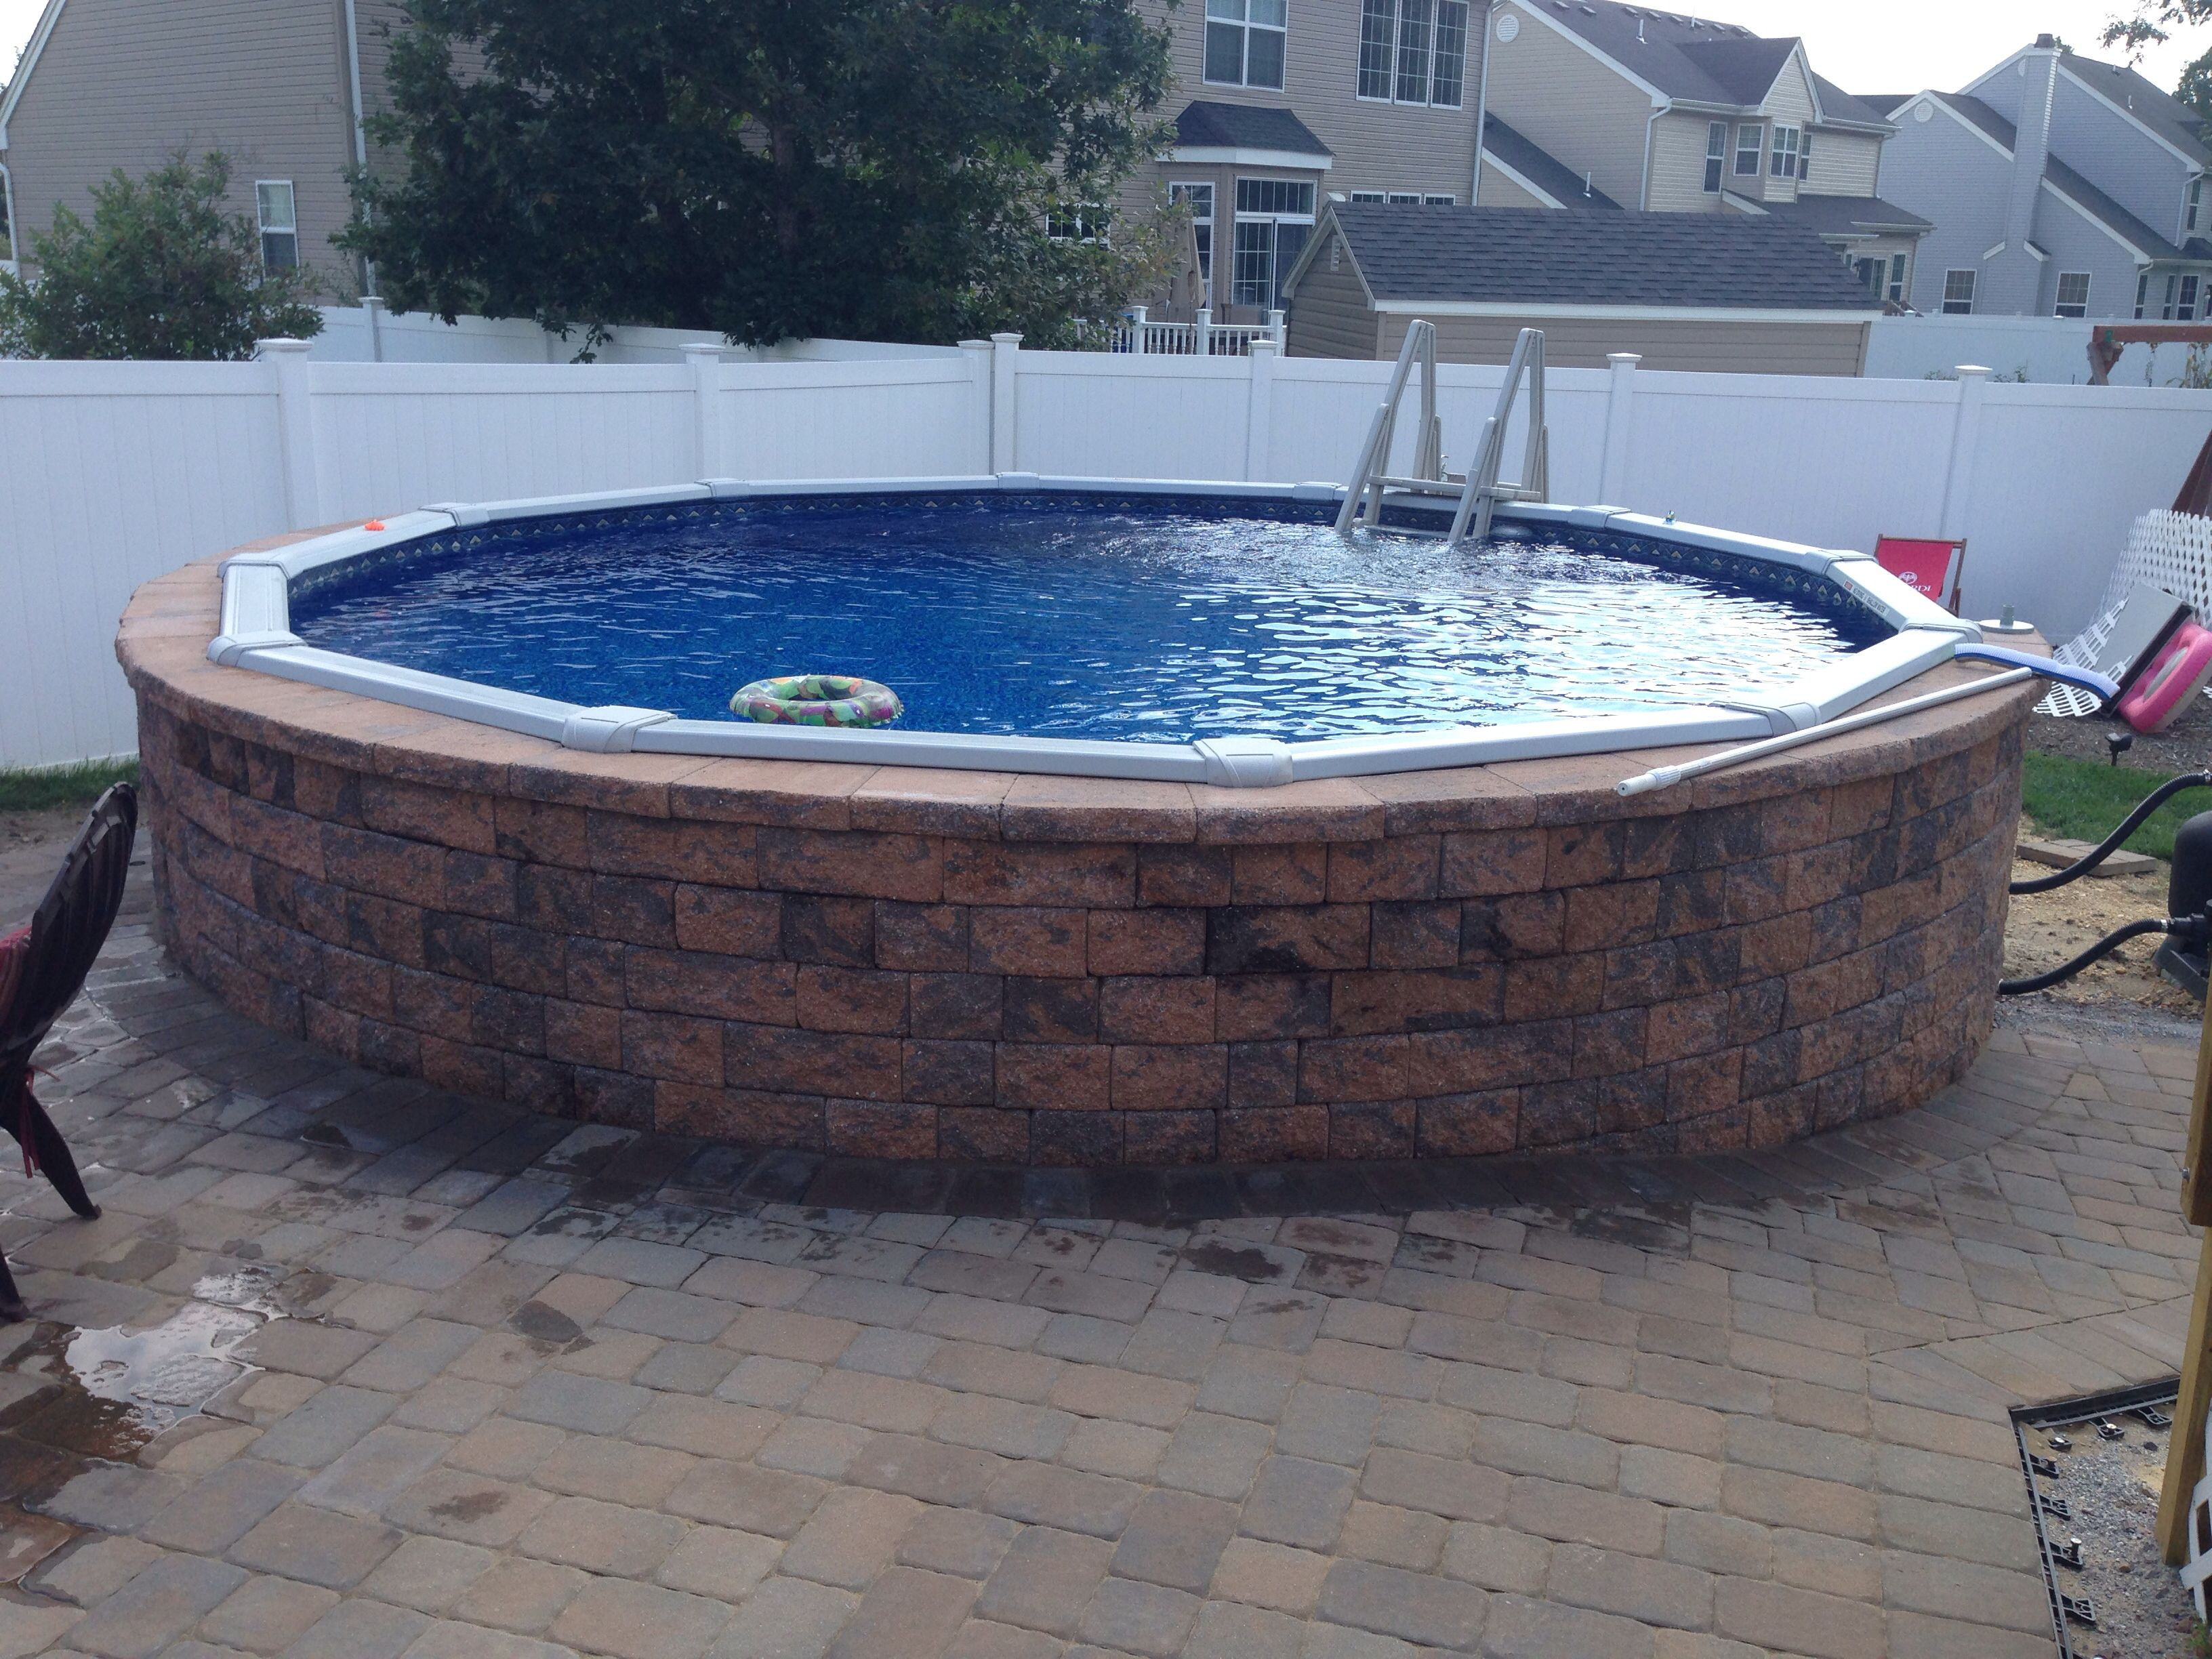 Ephenry wall stone around above ground swimming pool for Decor around swimming pool